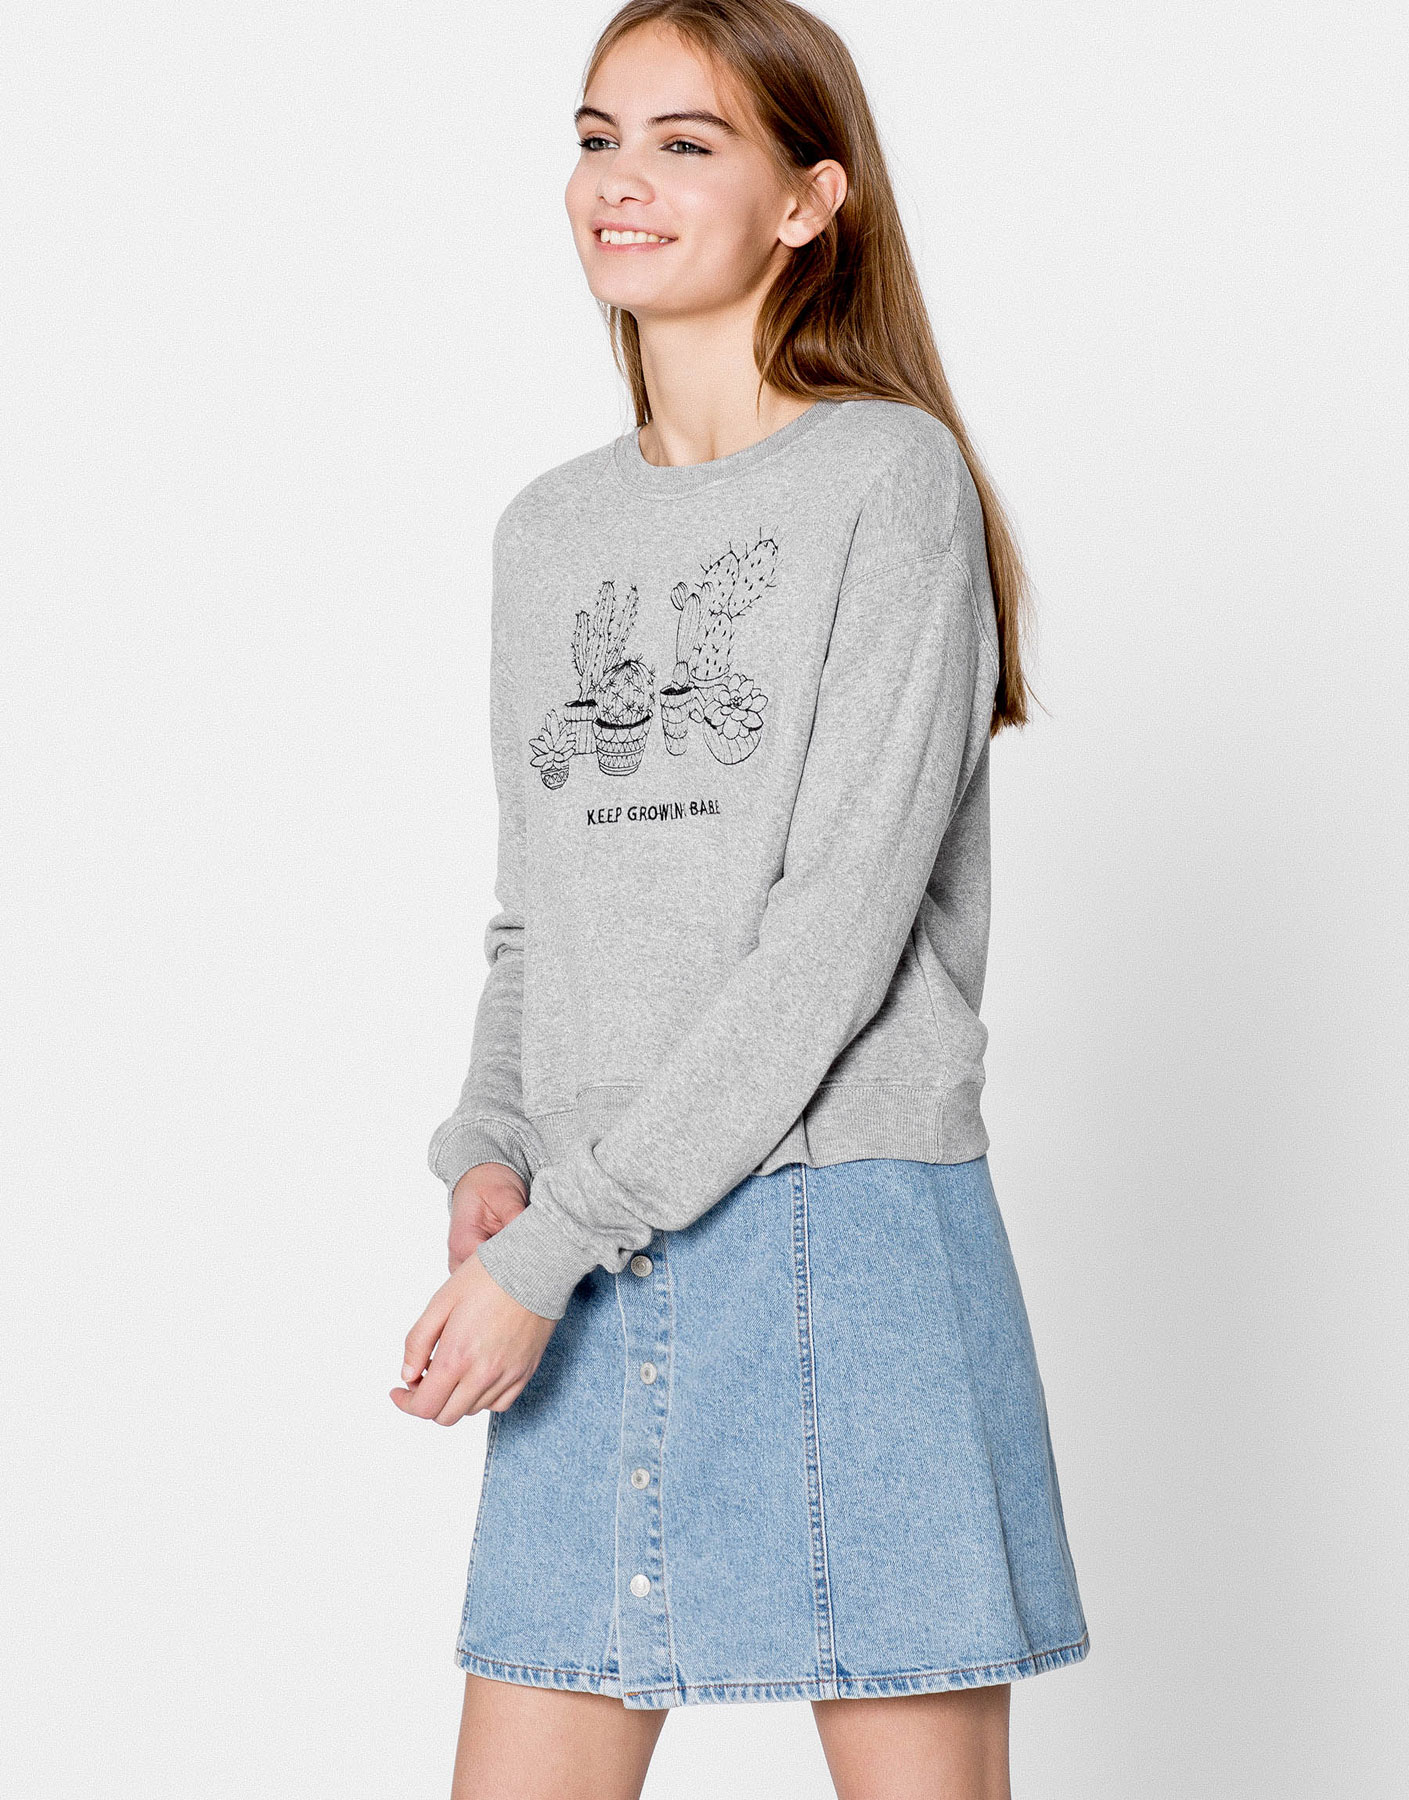 Embroidered cactus teen sweatshirt